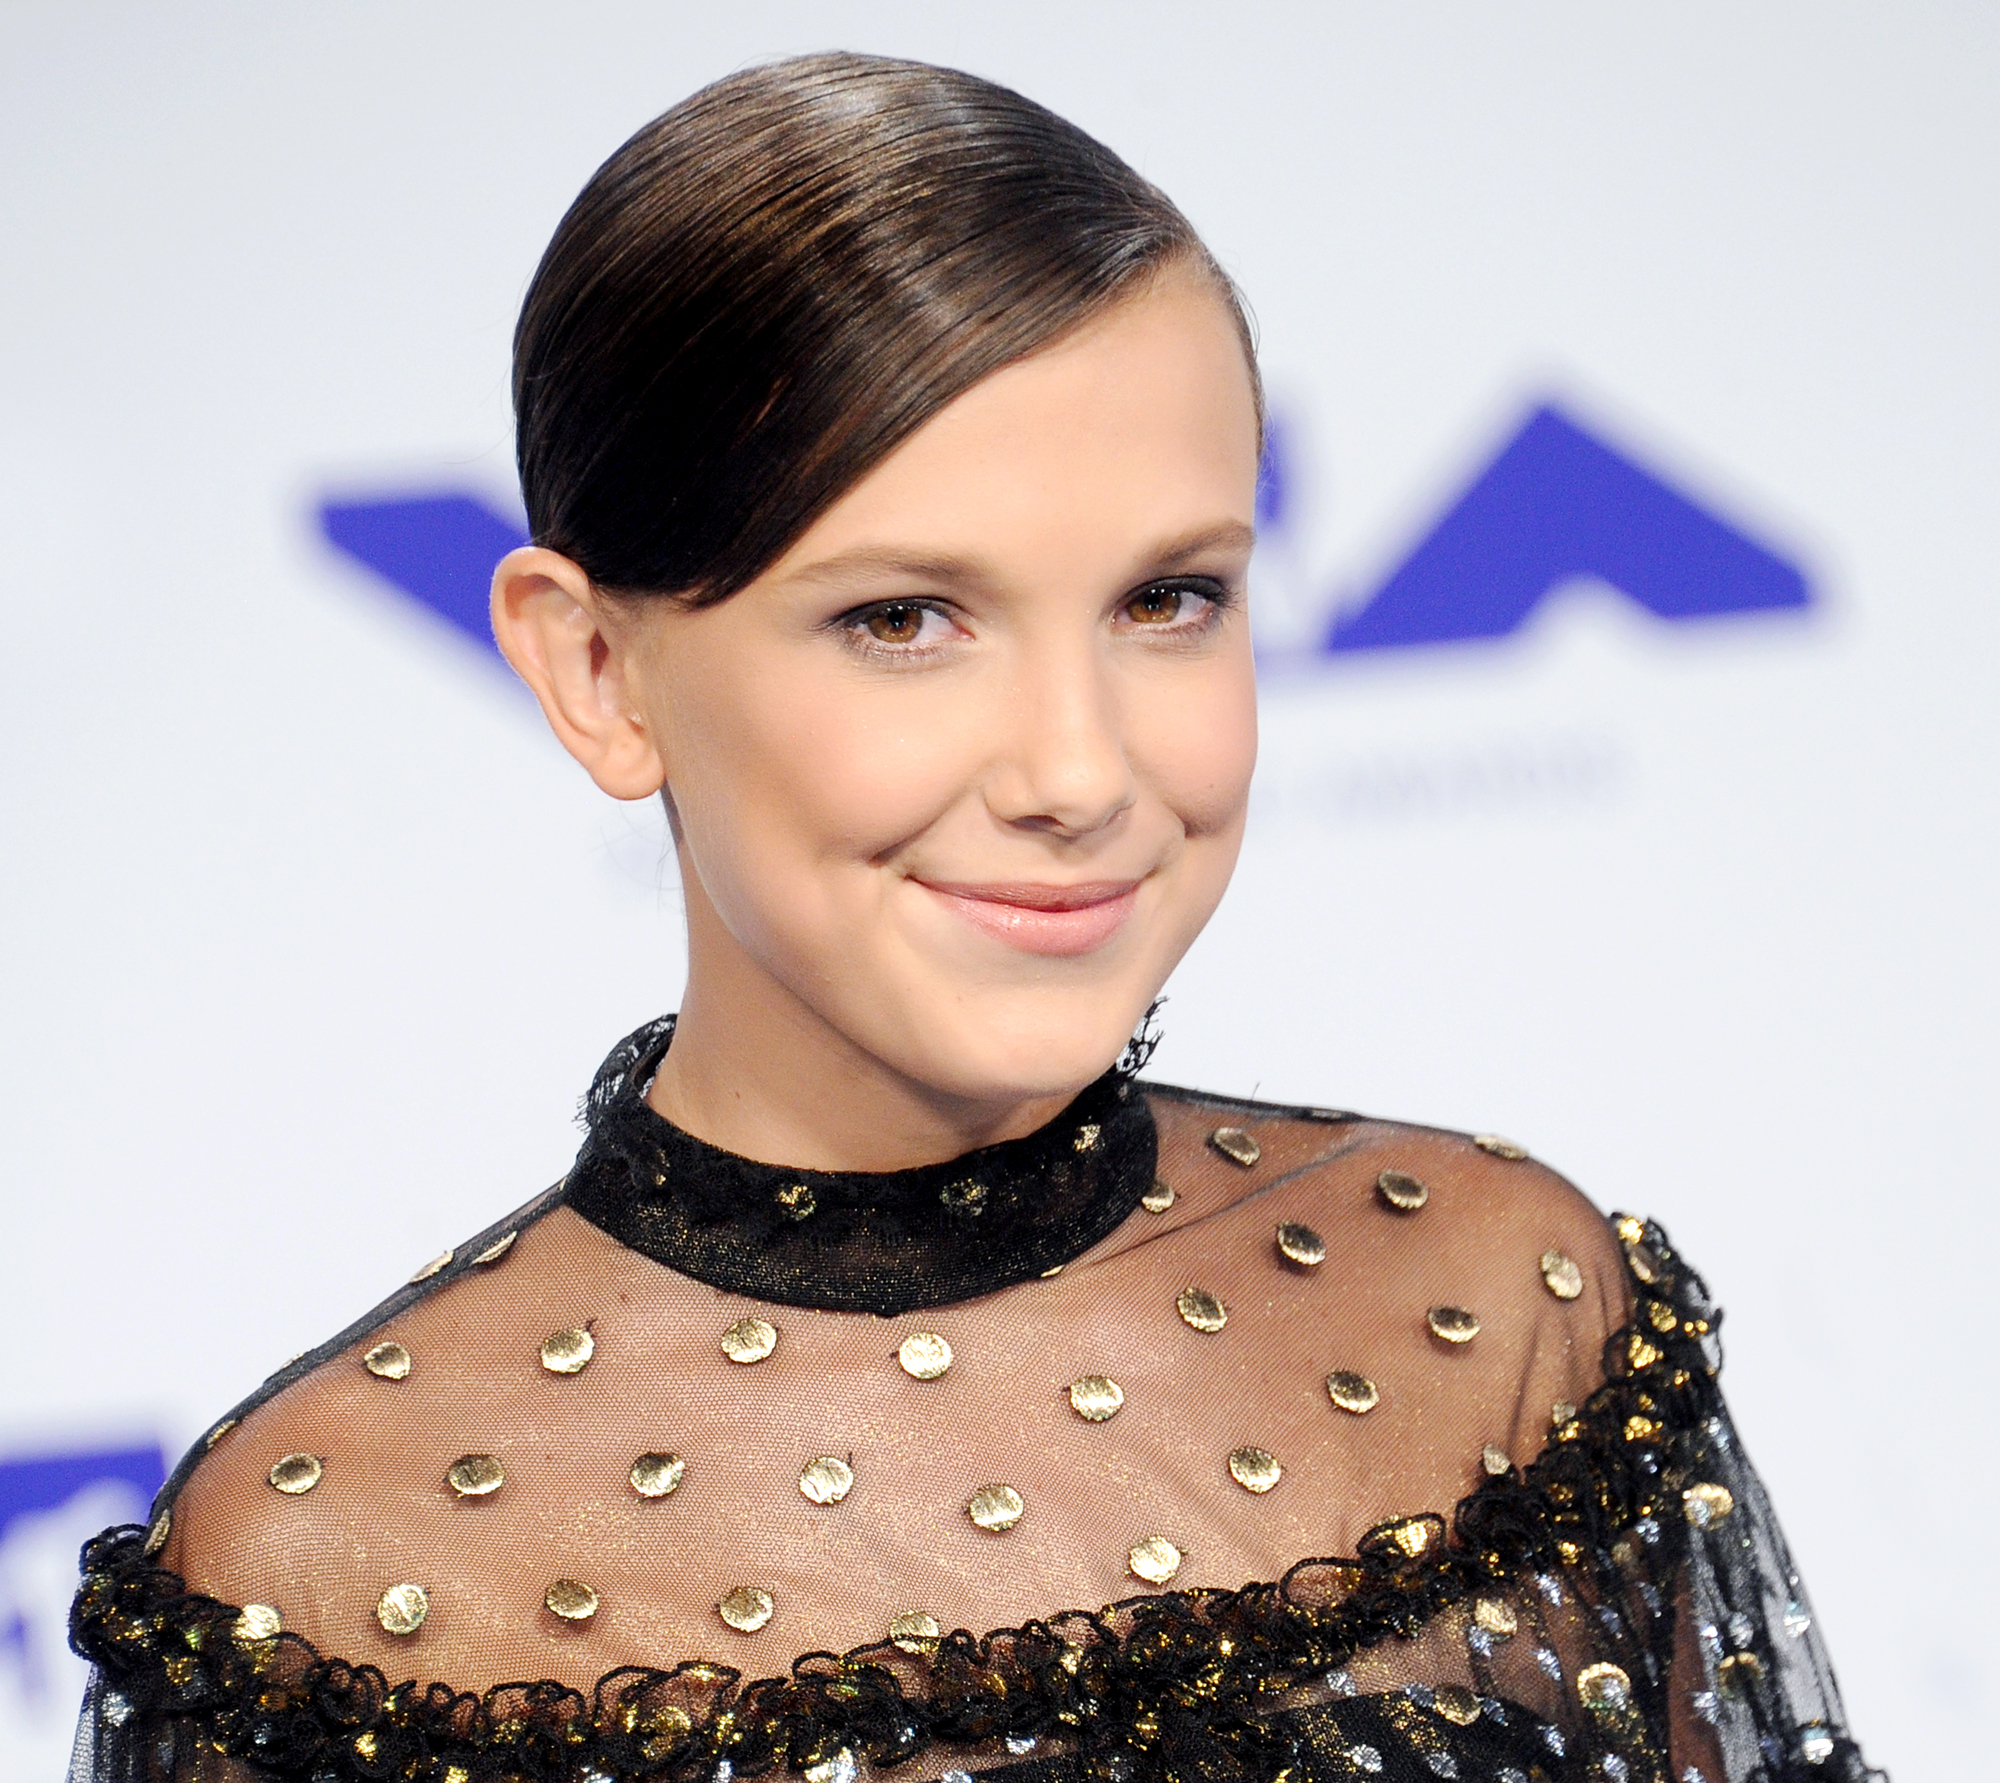 Millie Bobby Brown Reveals She's Deaf in One Ear and Expresses Her Love for Singing